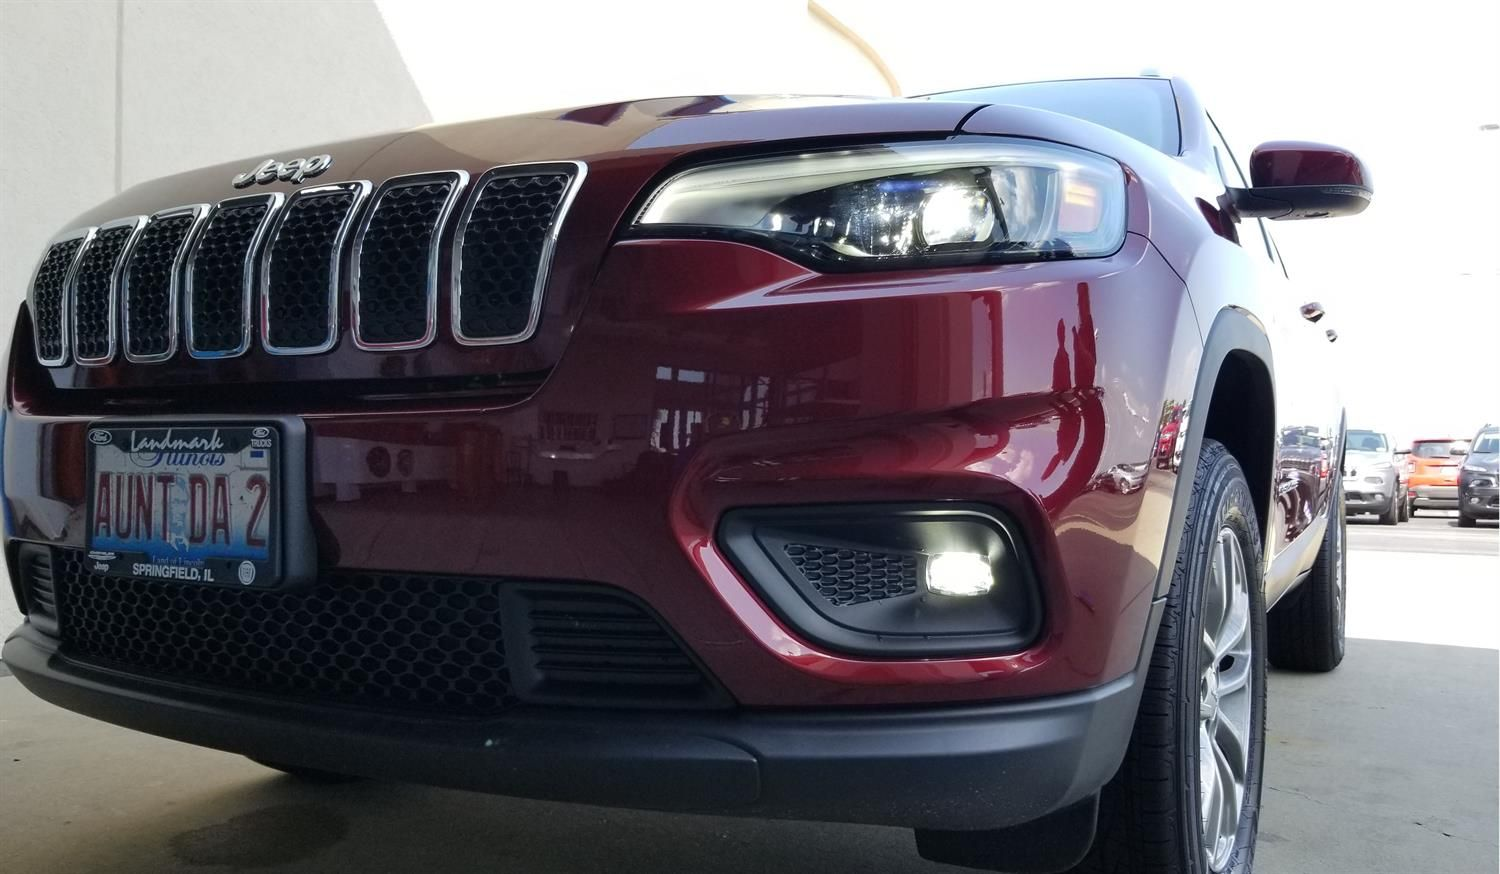 Congratulations And Best Wishes Rhonda On The Purchase Of Your 2018 JEEP  CHEROKEE! We Sincerely Appreciate Your Business, Landmark Chrysler Jeep  Fiat And ...